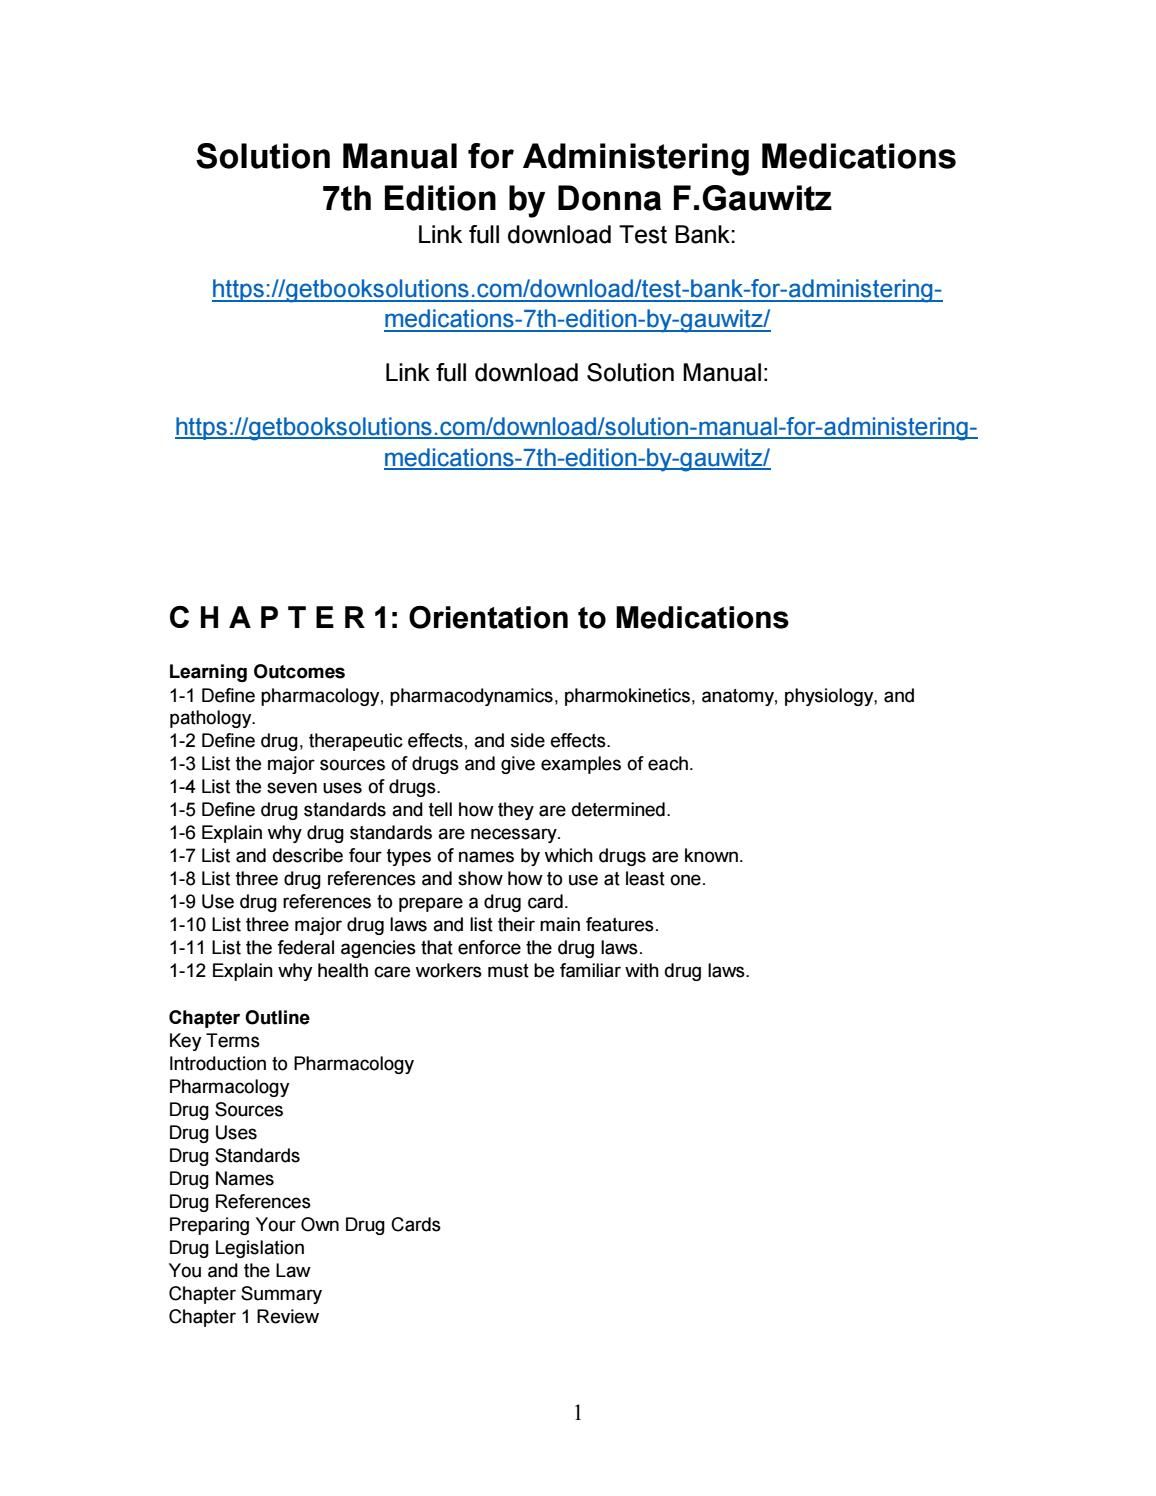 solution manual for administering medications 7th edition by gauwitz rh pinterest com